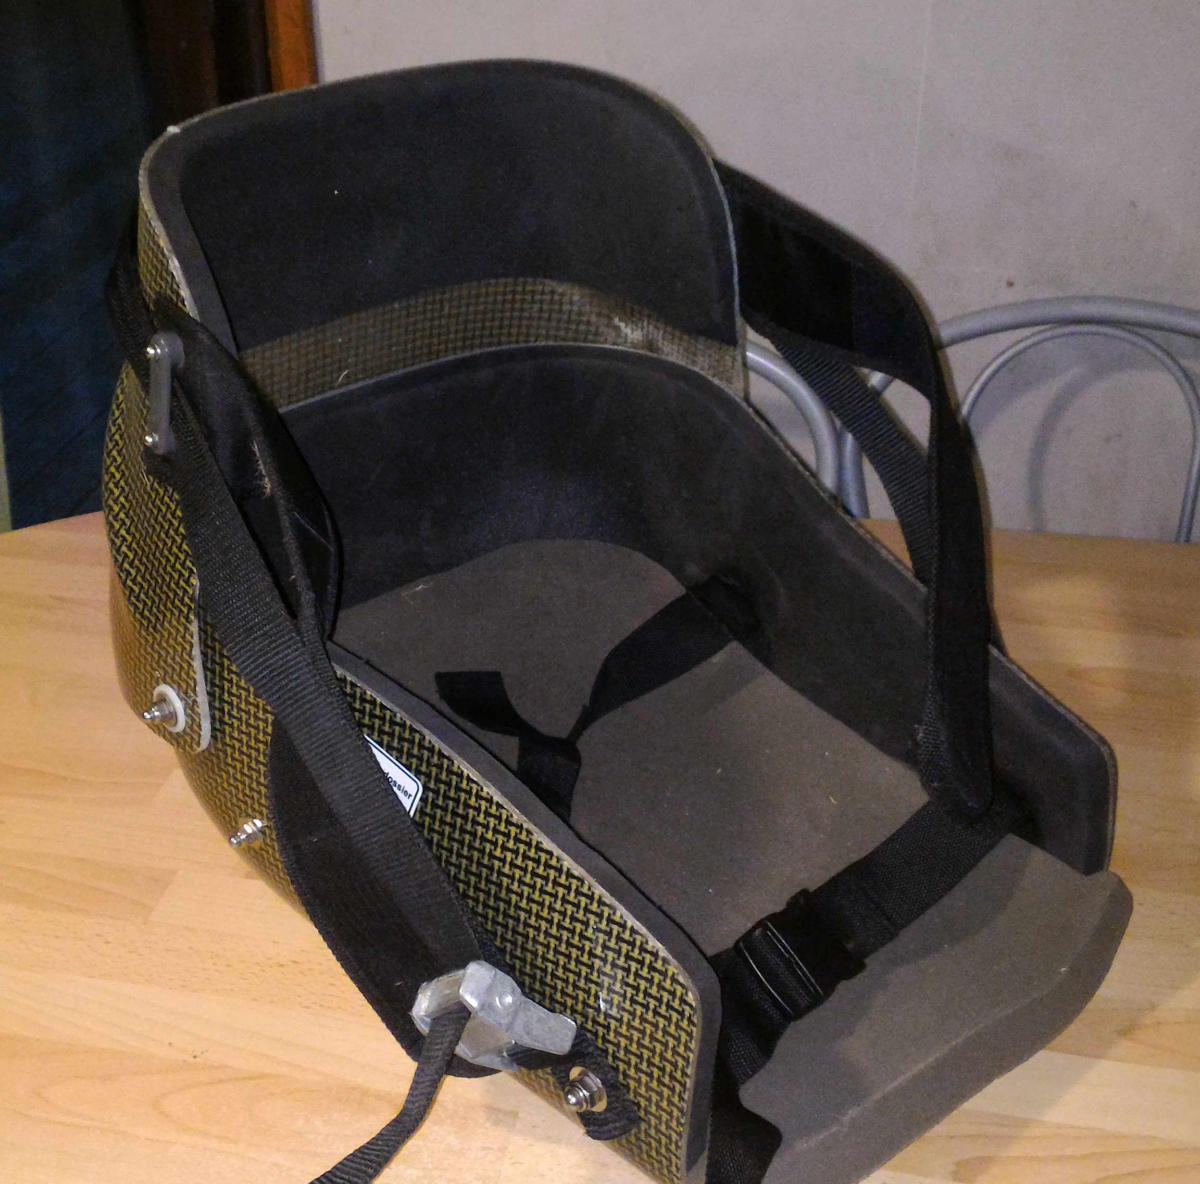 Second hand sitski seat